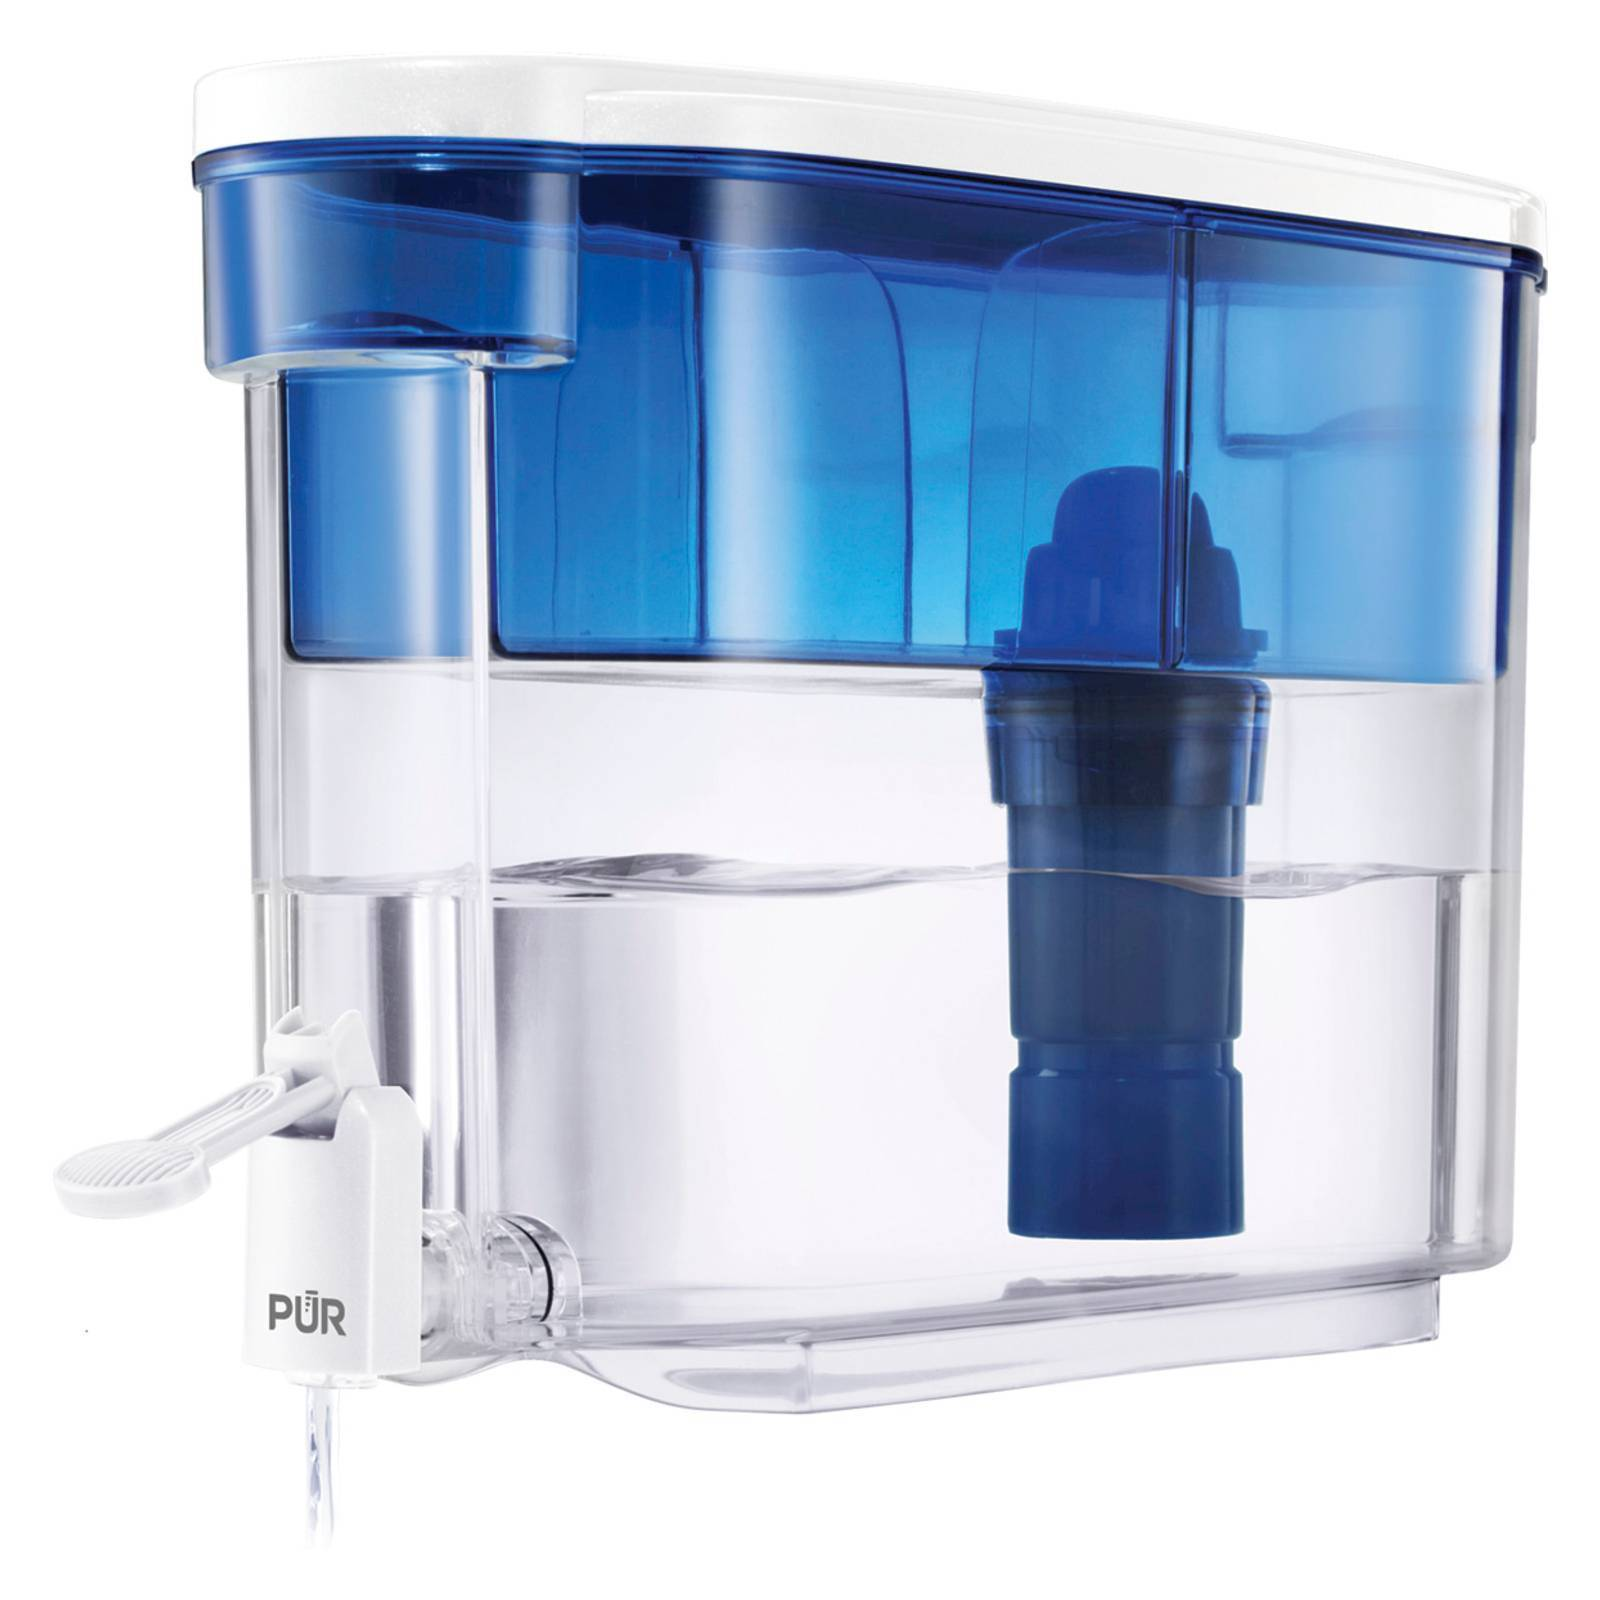 Best Water Filter Pitcher Reviews 2018: Filtration Jug ...